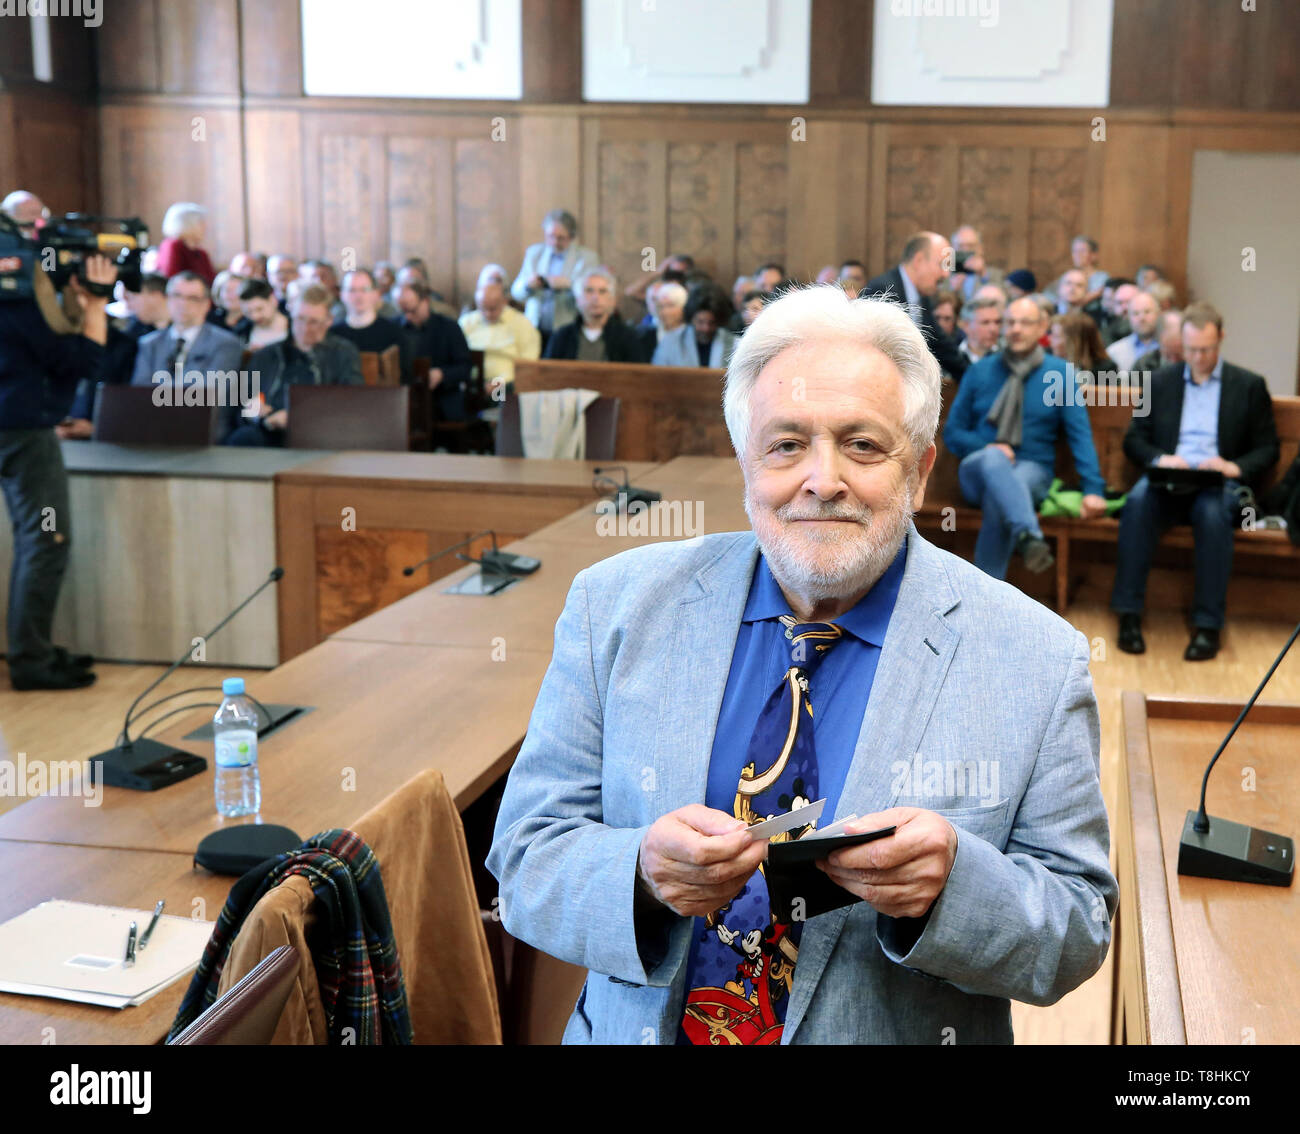 Duisburg, Germany. 13th May, 2019. The publicist Henryk M. Broder, accused of insulting, waits in the crowded courtroom for the trial to begin. In September 2016, at the request of the weekly newspaper 'Junge Freiheit', Broder had said about the Islamic scholar Kaddor that she had 'a gossip on her hands'. Broder appealed against an order of punishment, which is why the trial is now at trial. Credit: Roland Weihrauch/dpa/Alamy Live News - Stock Image